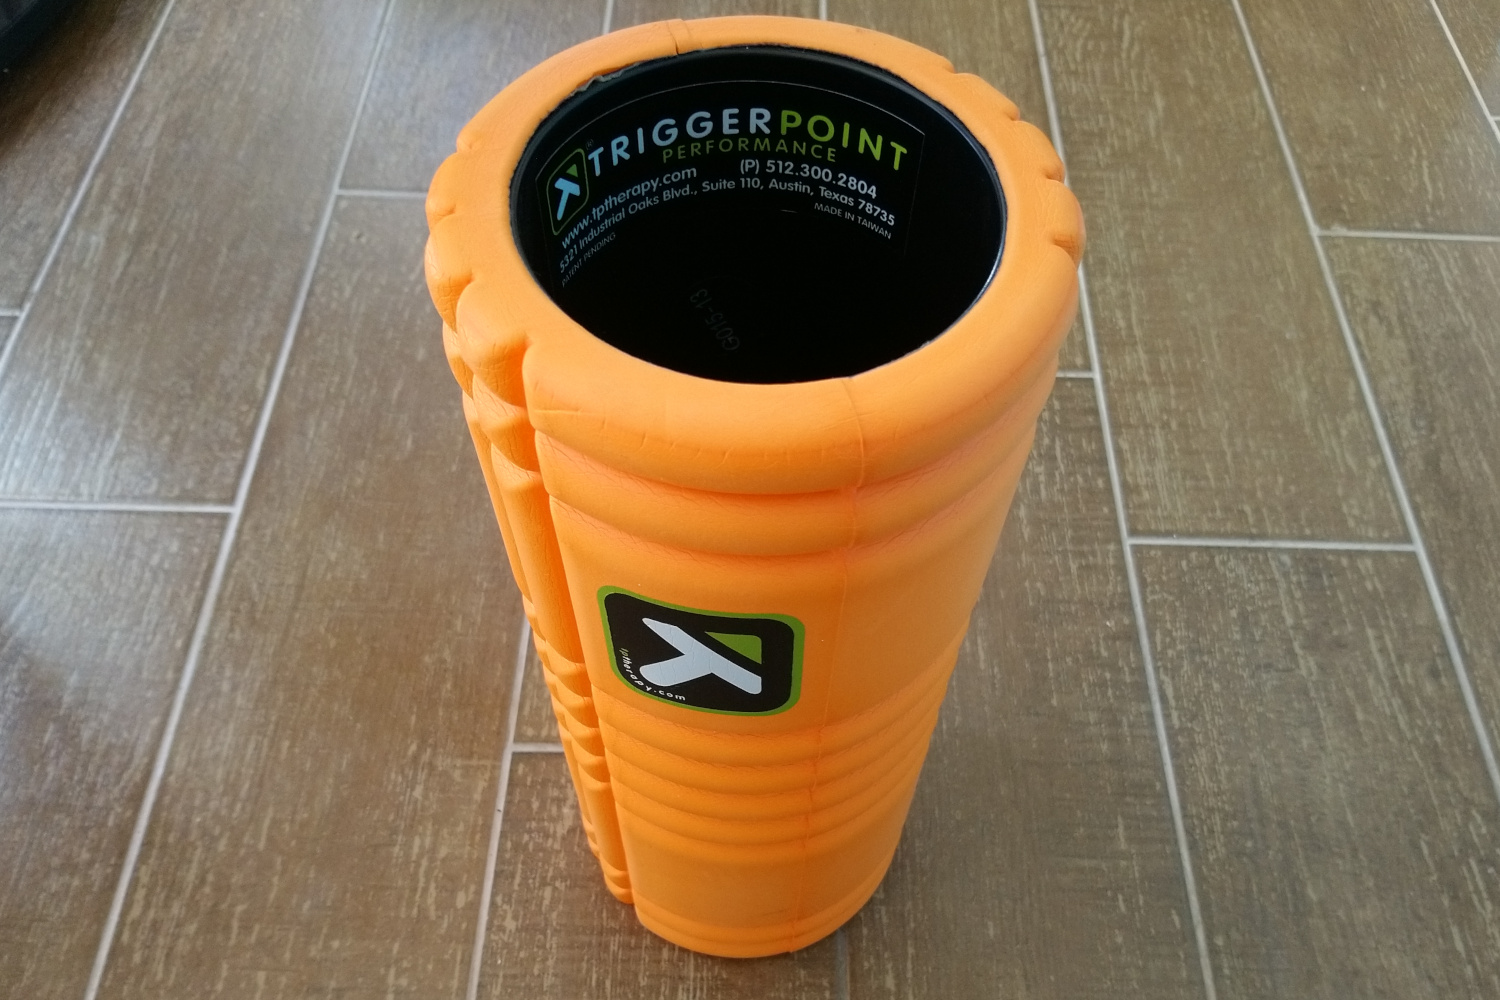 Andrew's Foam Roller from Trigger Point